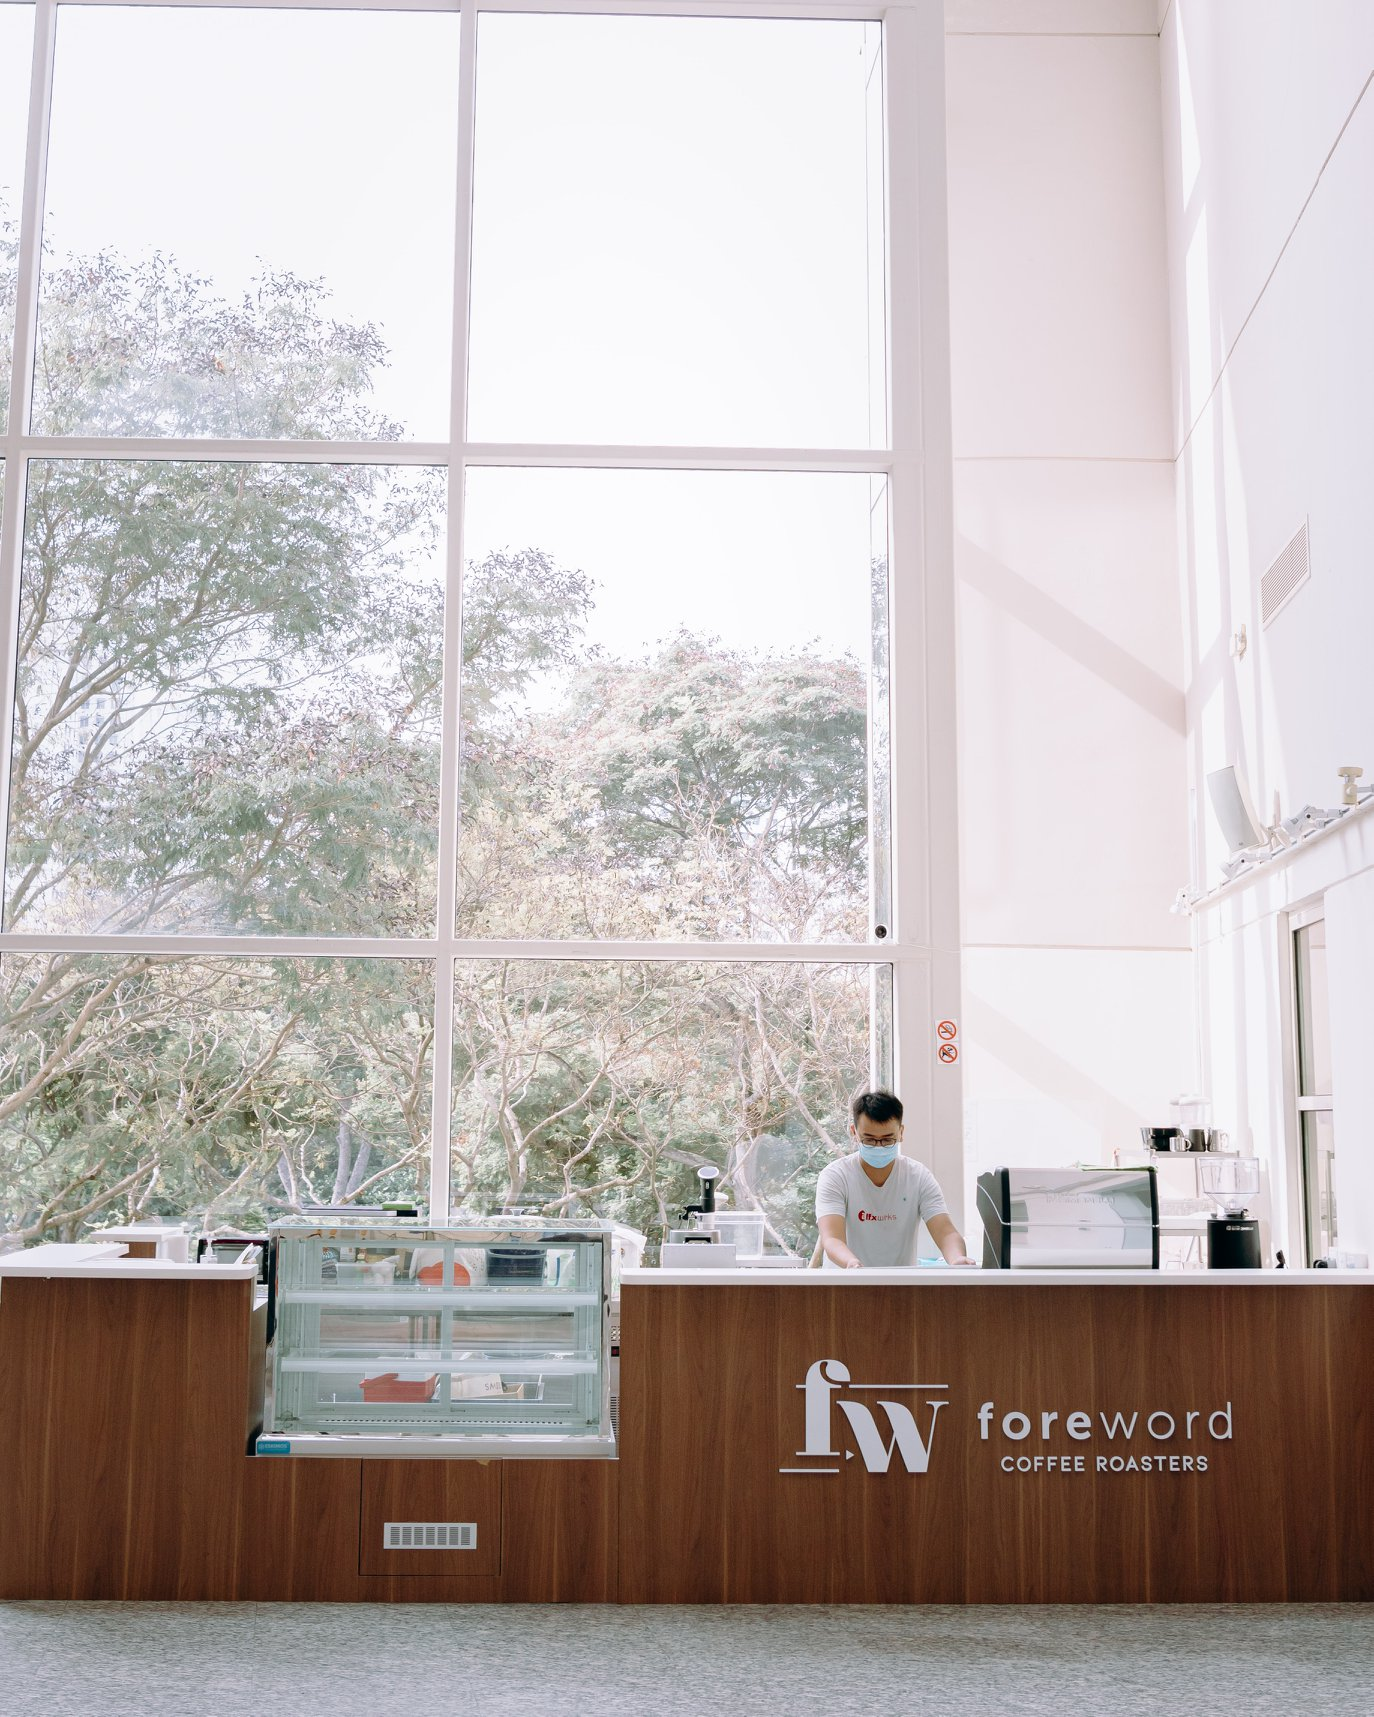 Foreword Coffee Yong Siew Toh Conservatory of Music